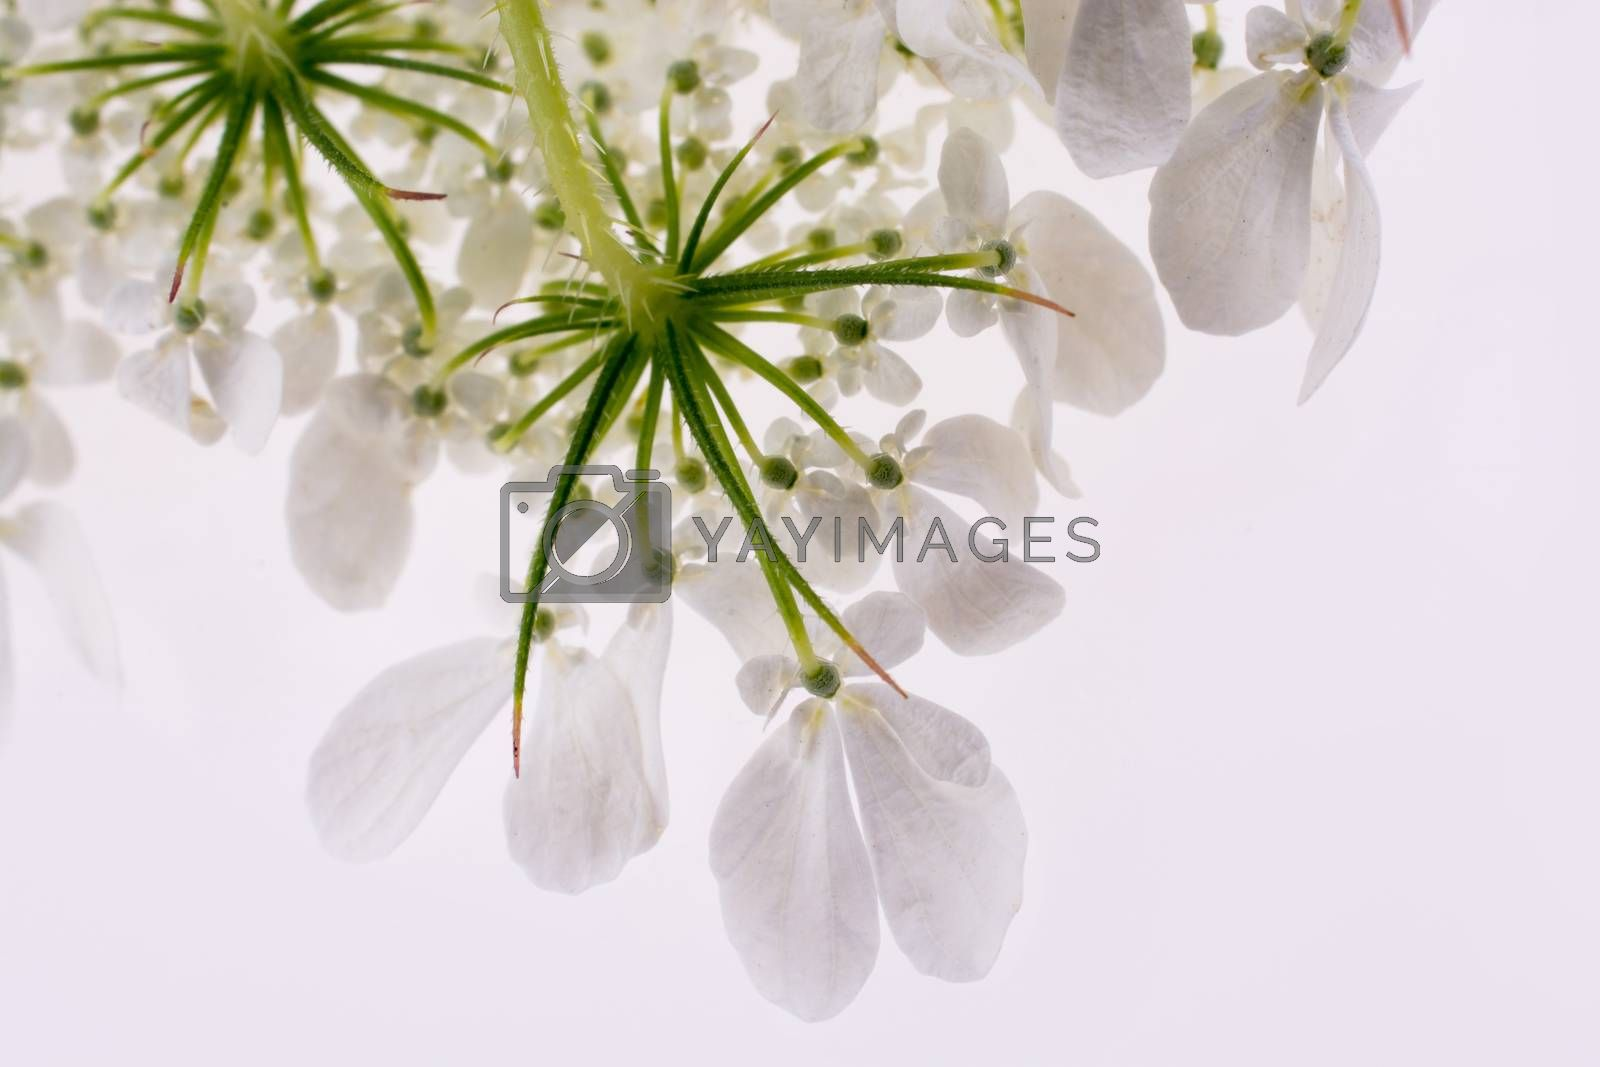 Hand holding a white flower on a white background